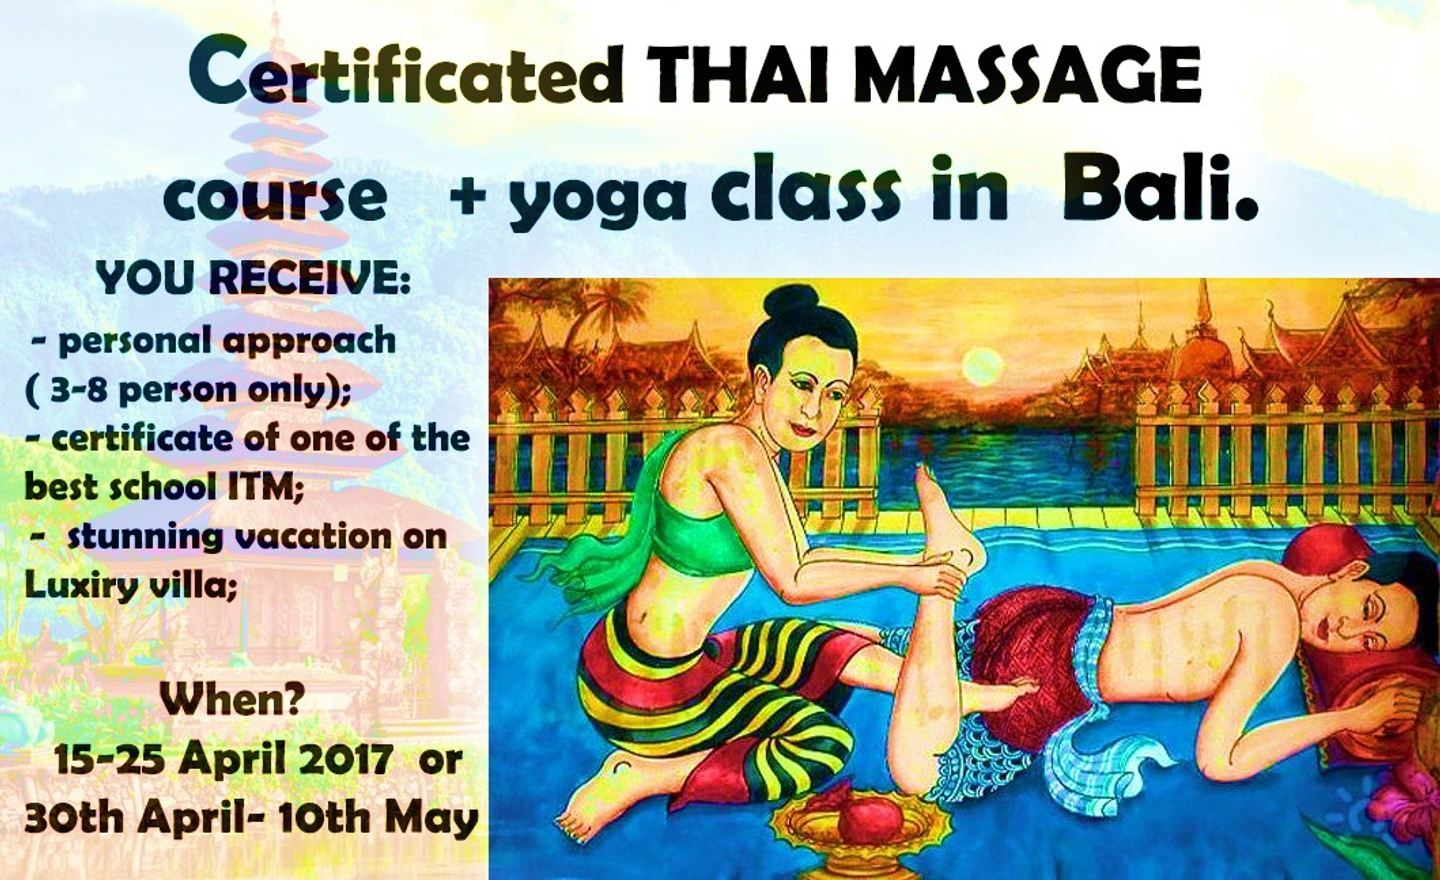 Certificated professional course of Thai massage- 11 days in Bali (Teacher training passive yoga)